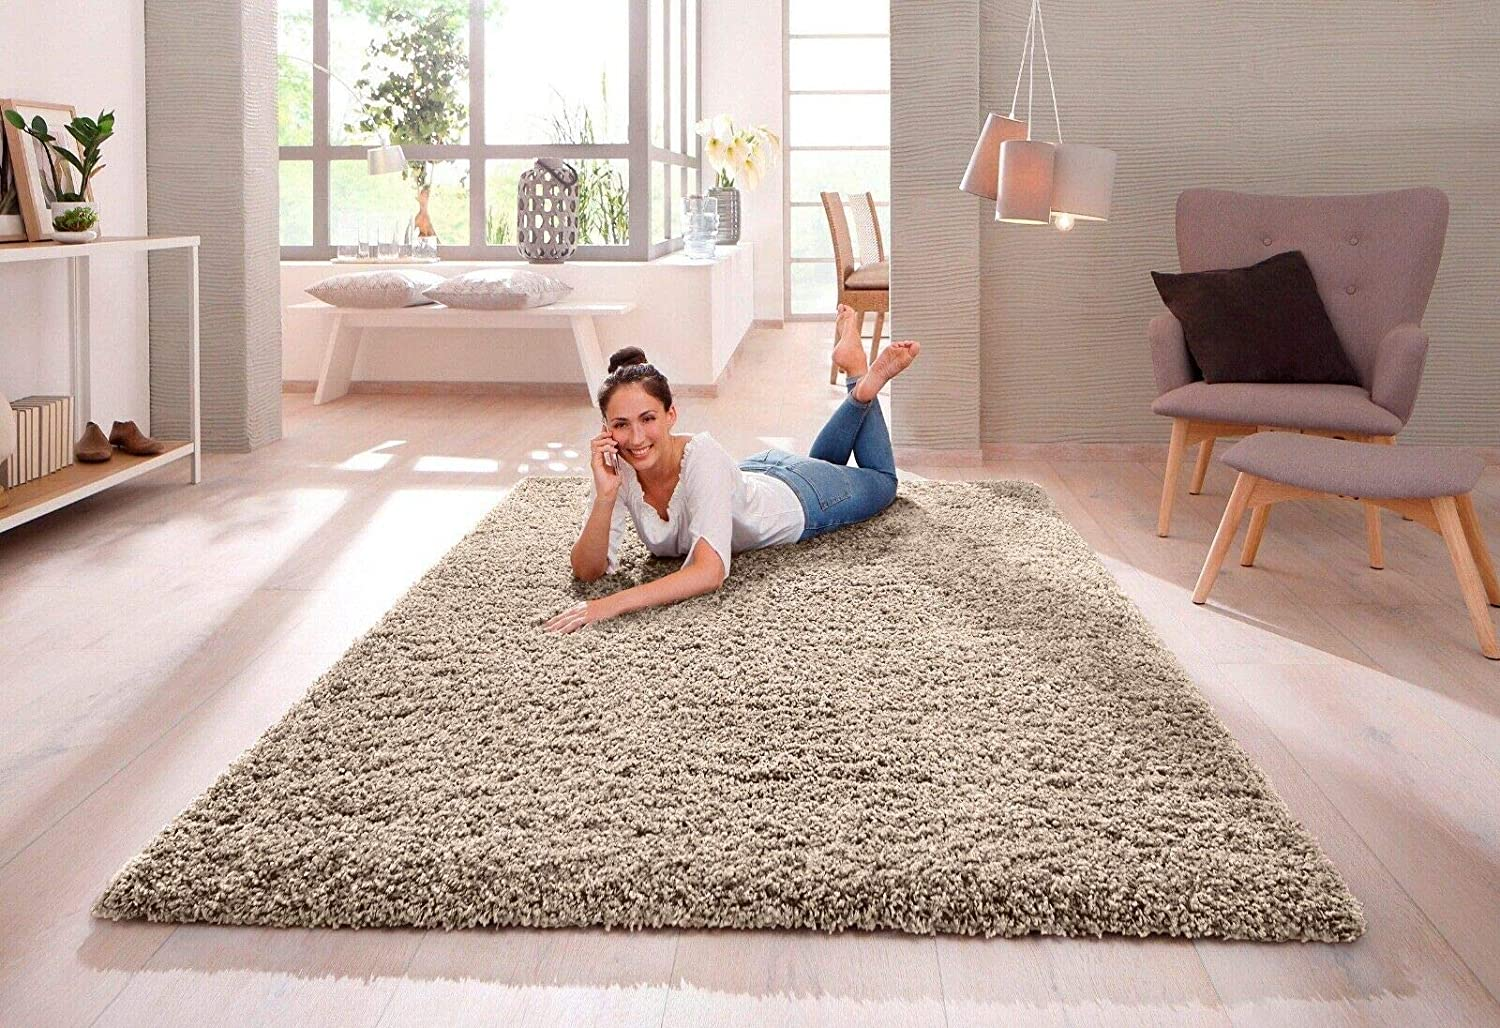 SHAGGY RUG 30MM   3cm Modern Rugs Living Room Extra Large Small Medium Rectangular Size Soft Touch Thick Pile Living Room Area Rugs Non Shedding (Light Beige Mink, 160cm x 230cm (5.5ft x 7.5ft))